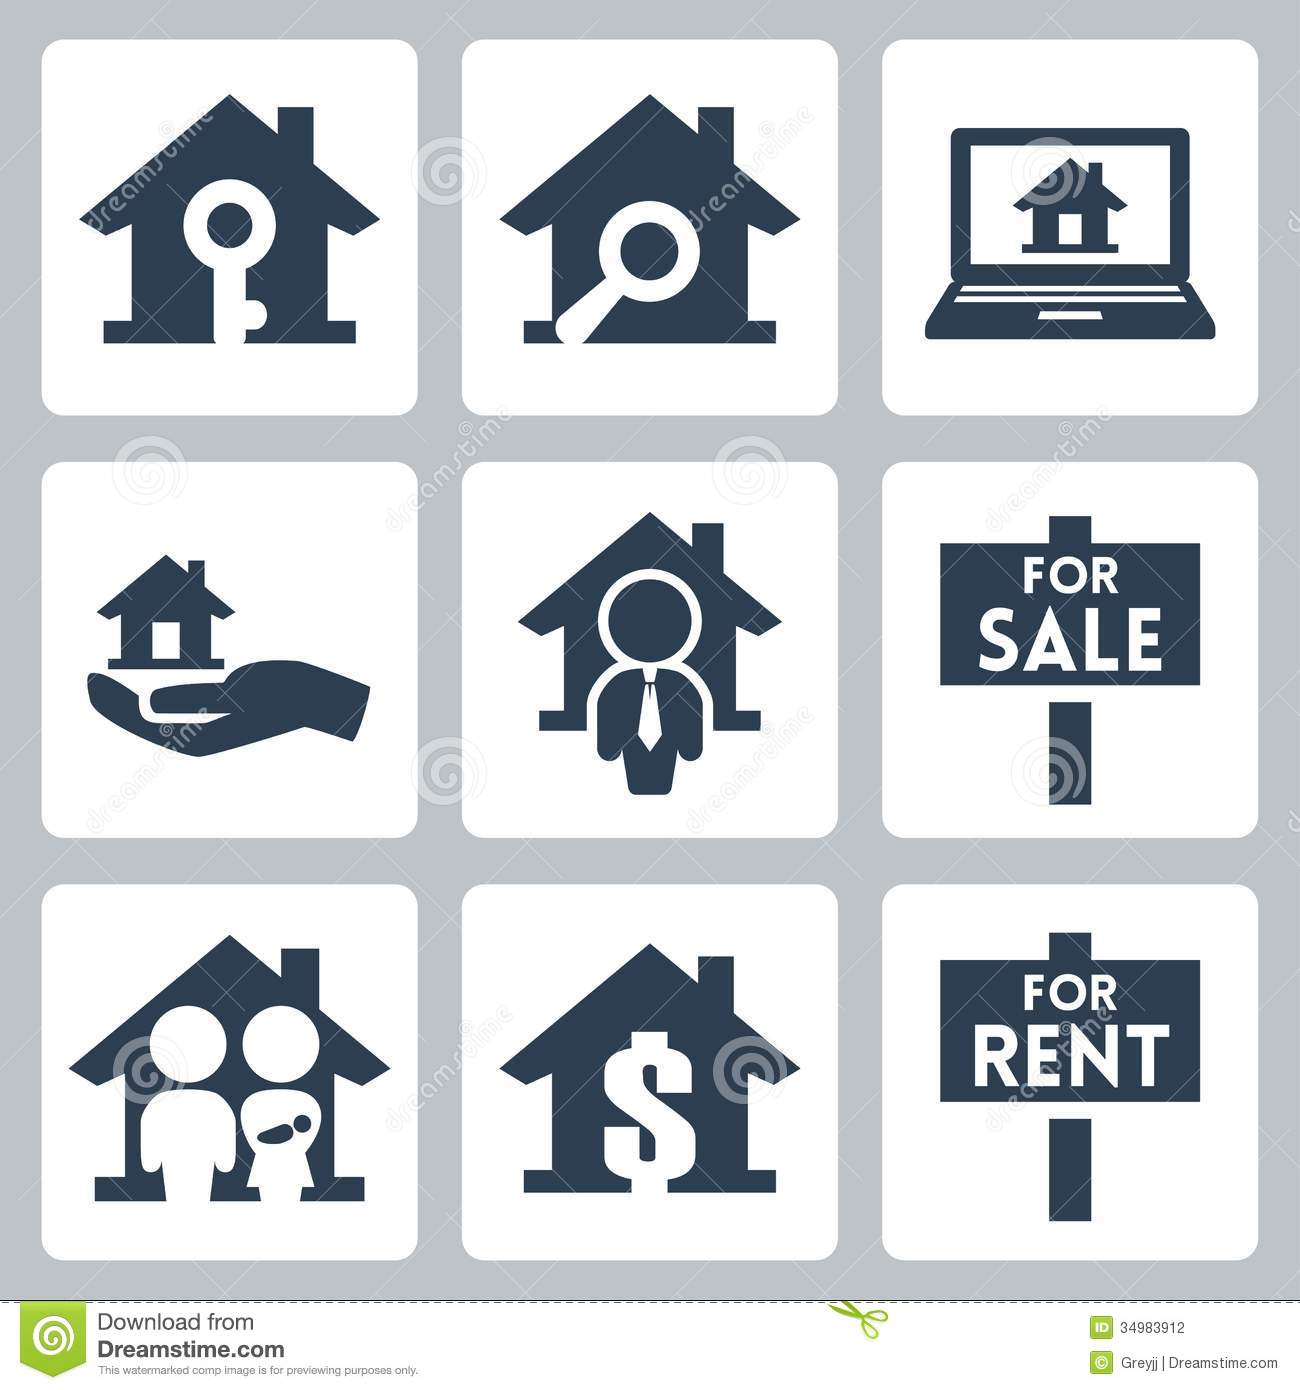 16 Real Estate Icons Vector Images